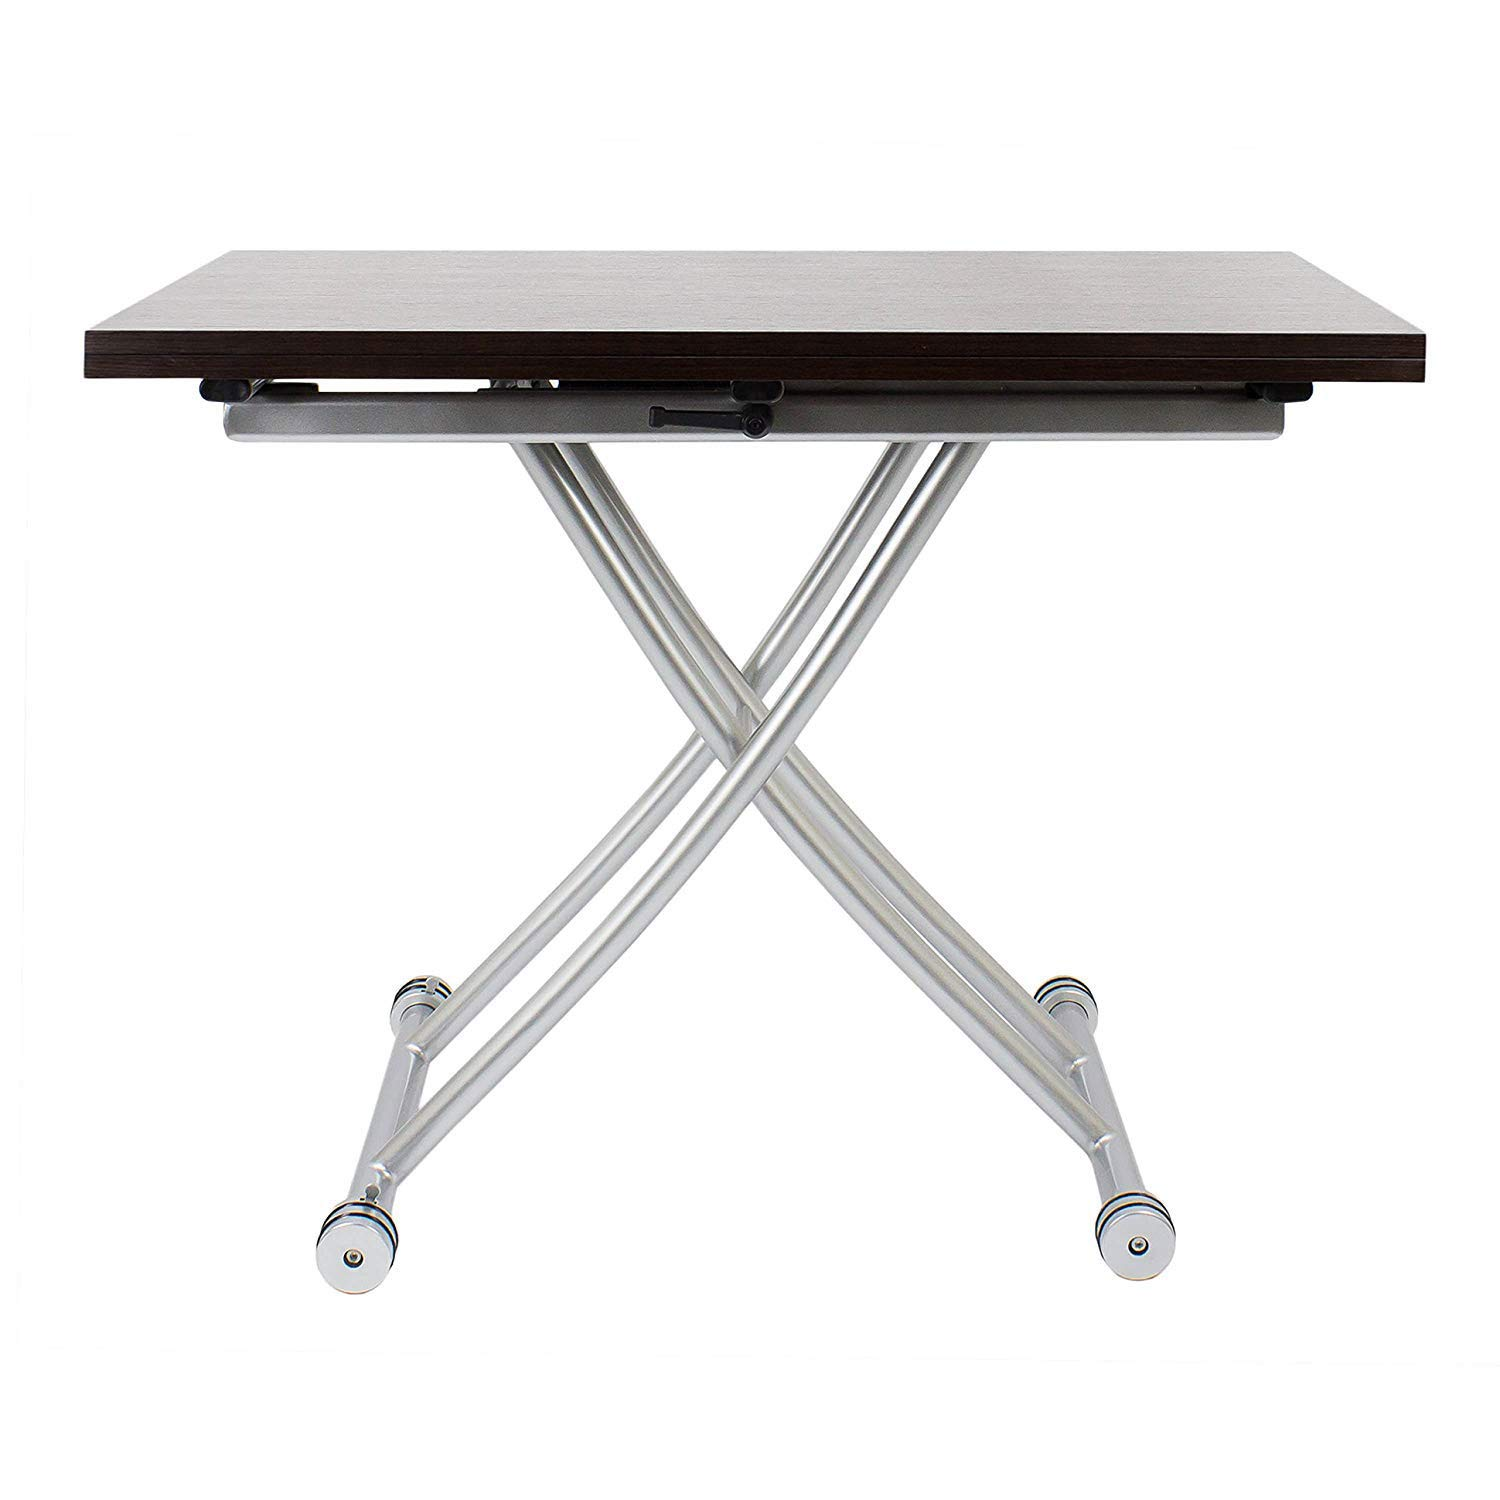 SpaceMaster 2219 X Convertible Adjustable Coffee and Dining Table Walnut Wood